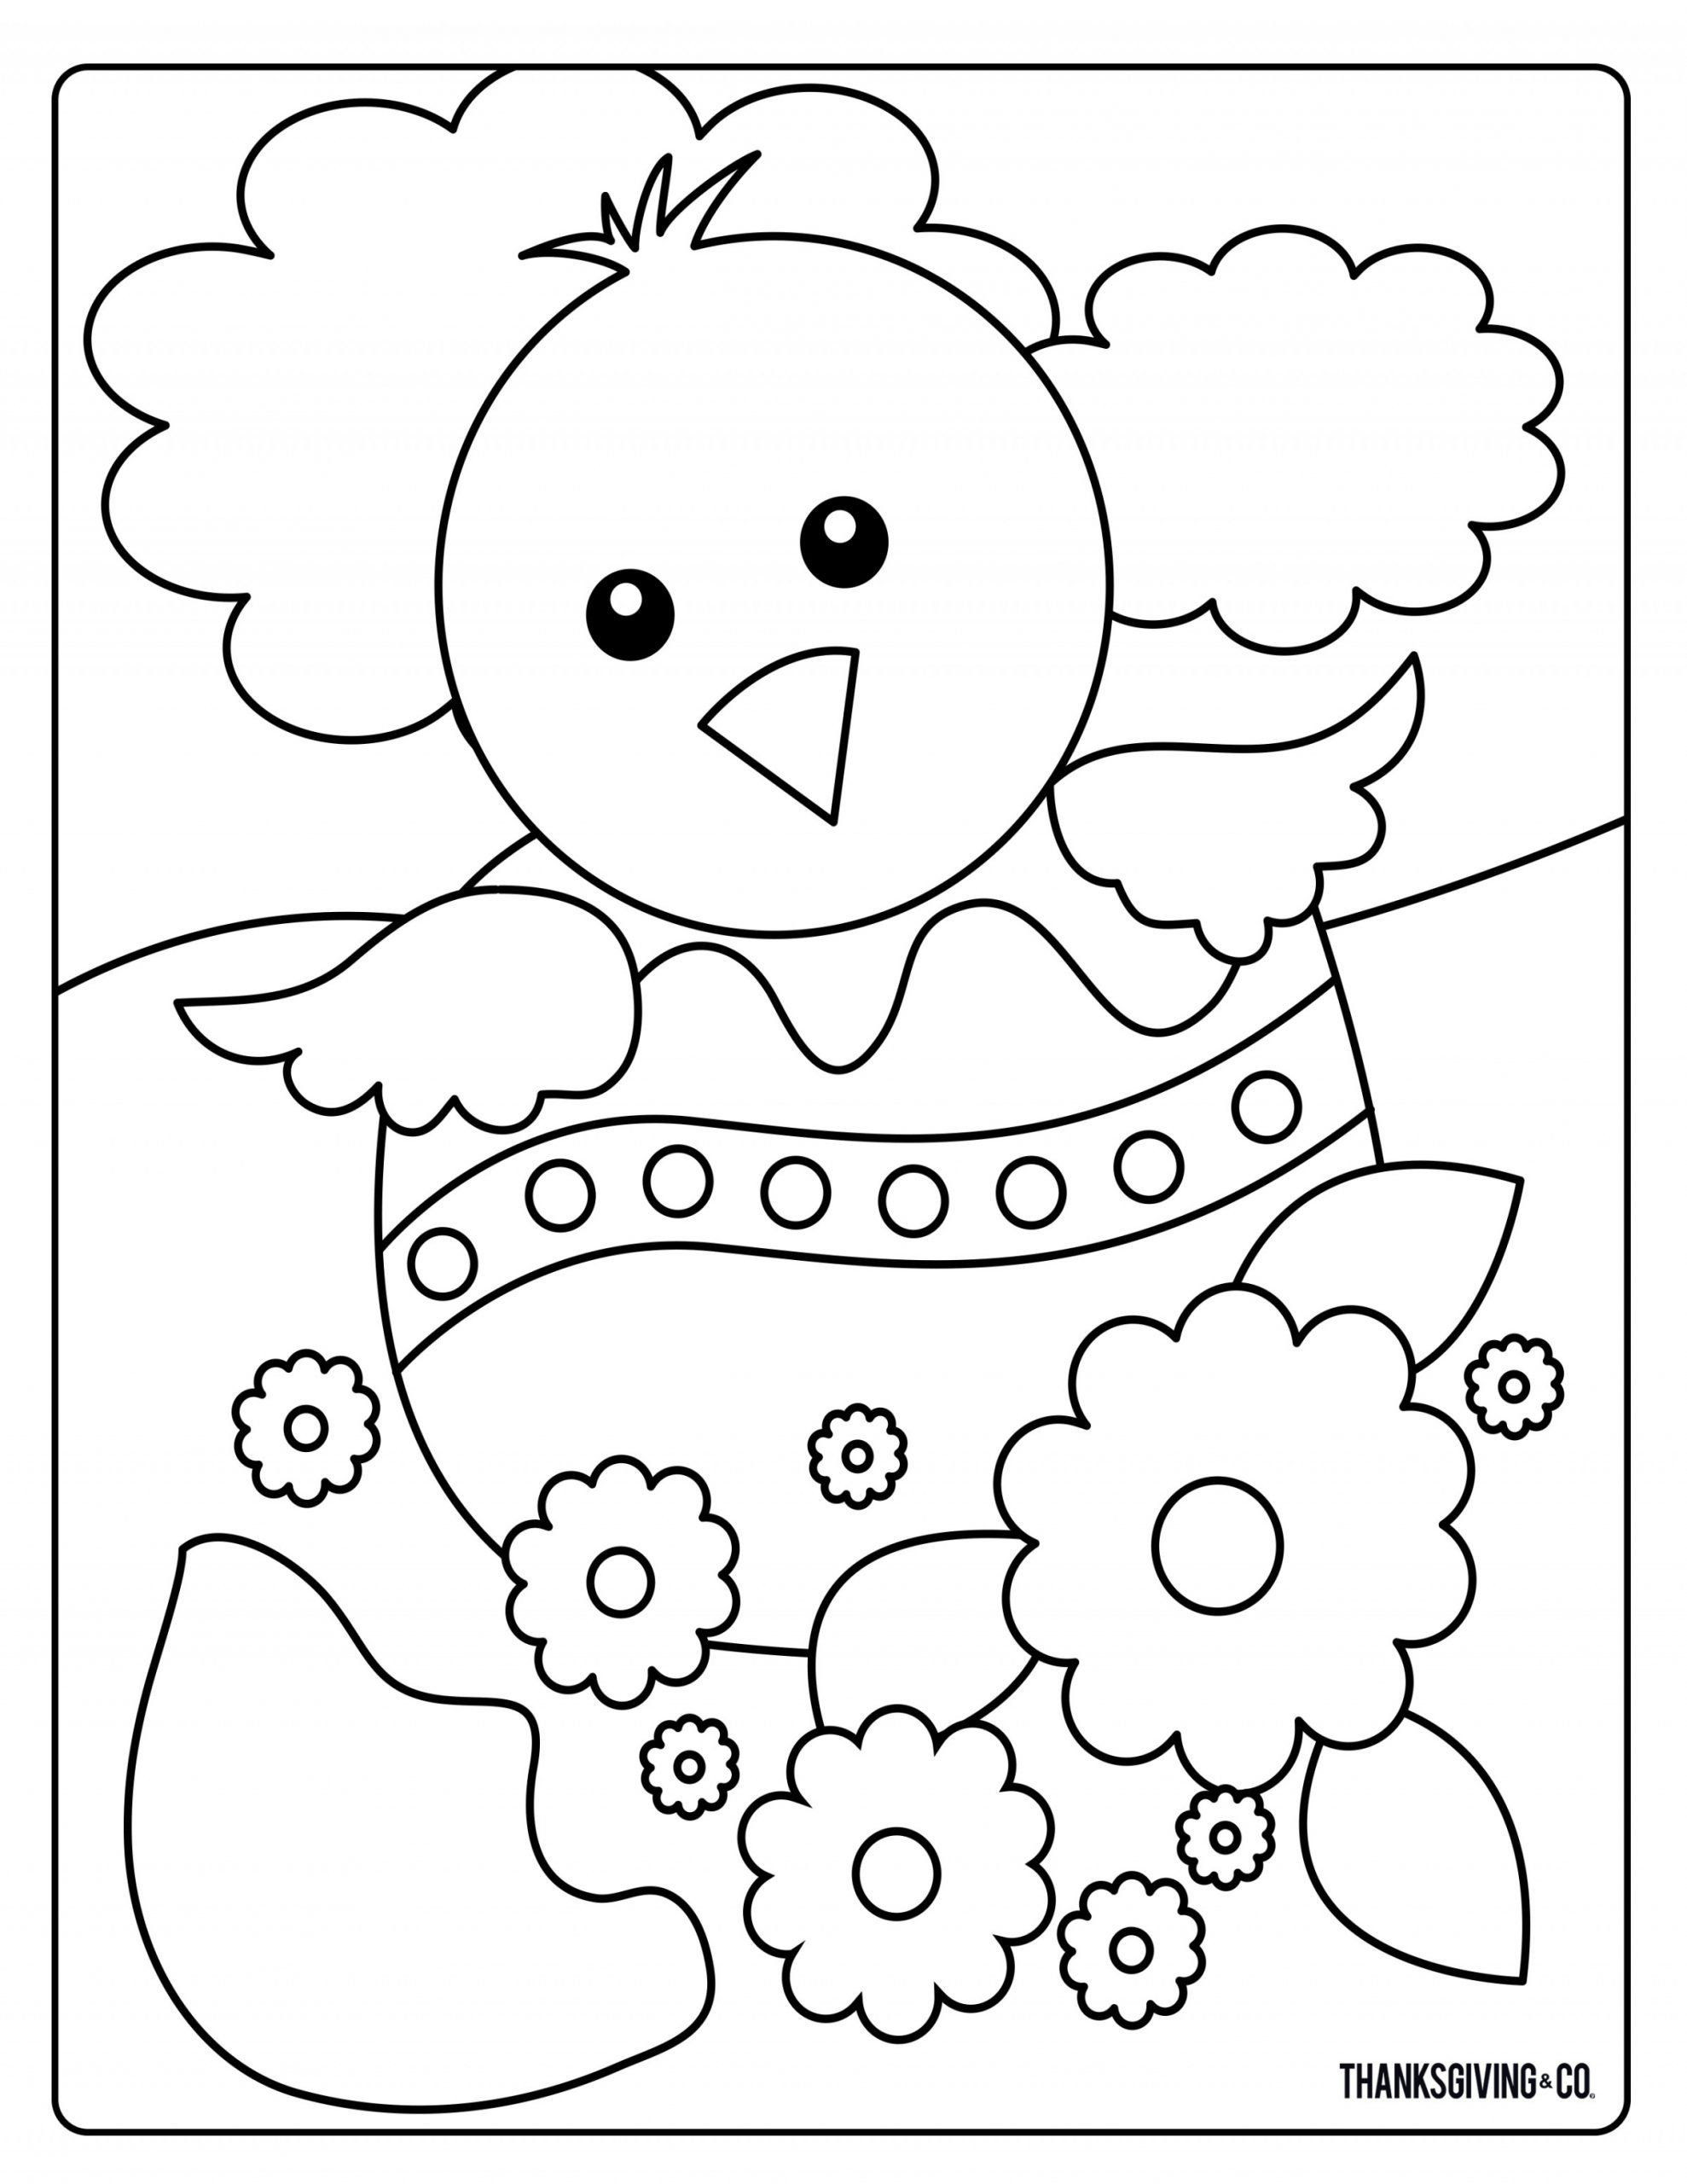 Easter Worksheets For Kids Coloring Pages Coloring Easters Stunning Bathroom Freean Easter Coloring Book Unicorn Coloring Pages Easter Coloring Pictures